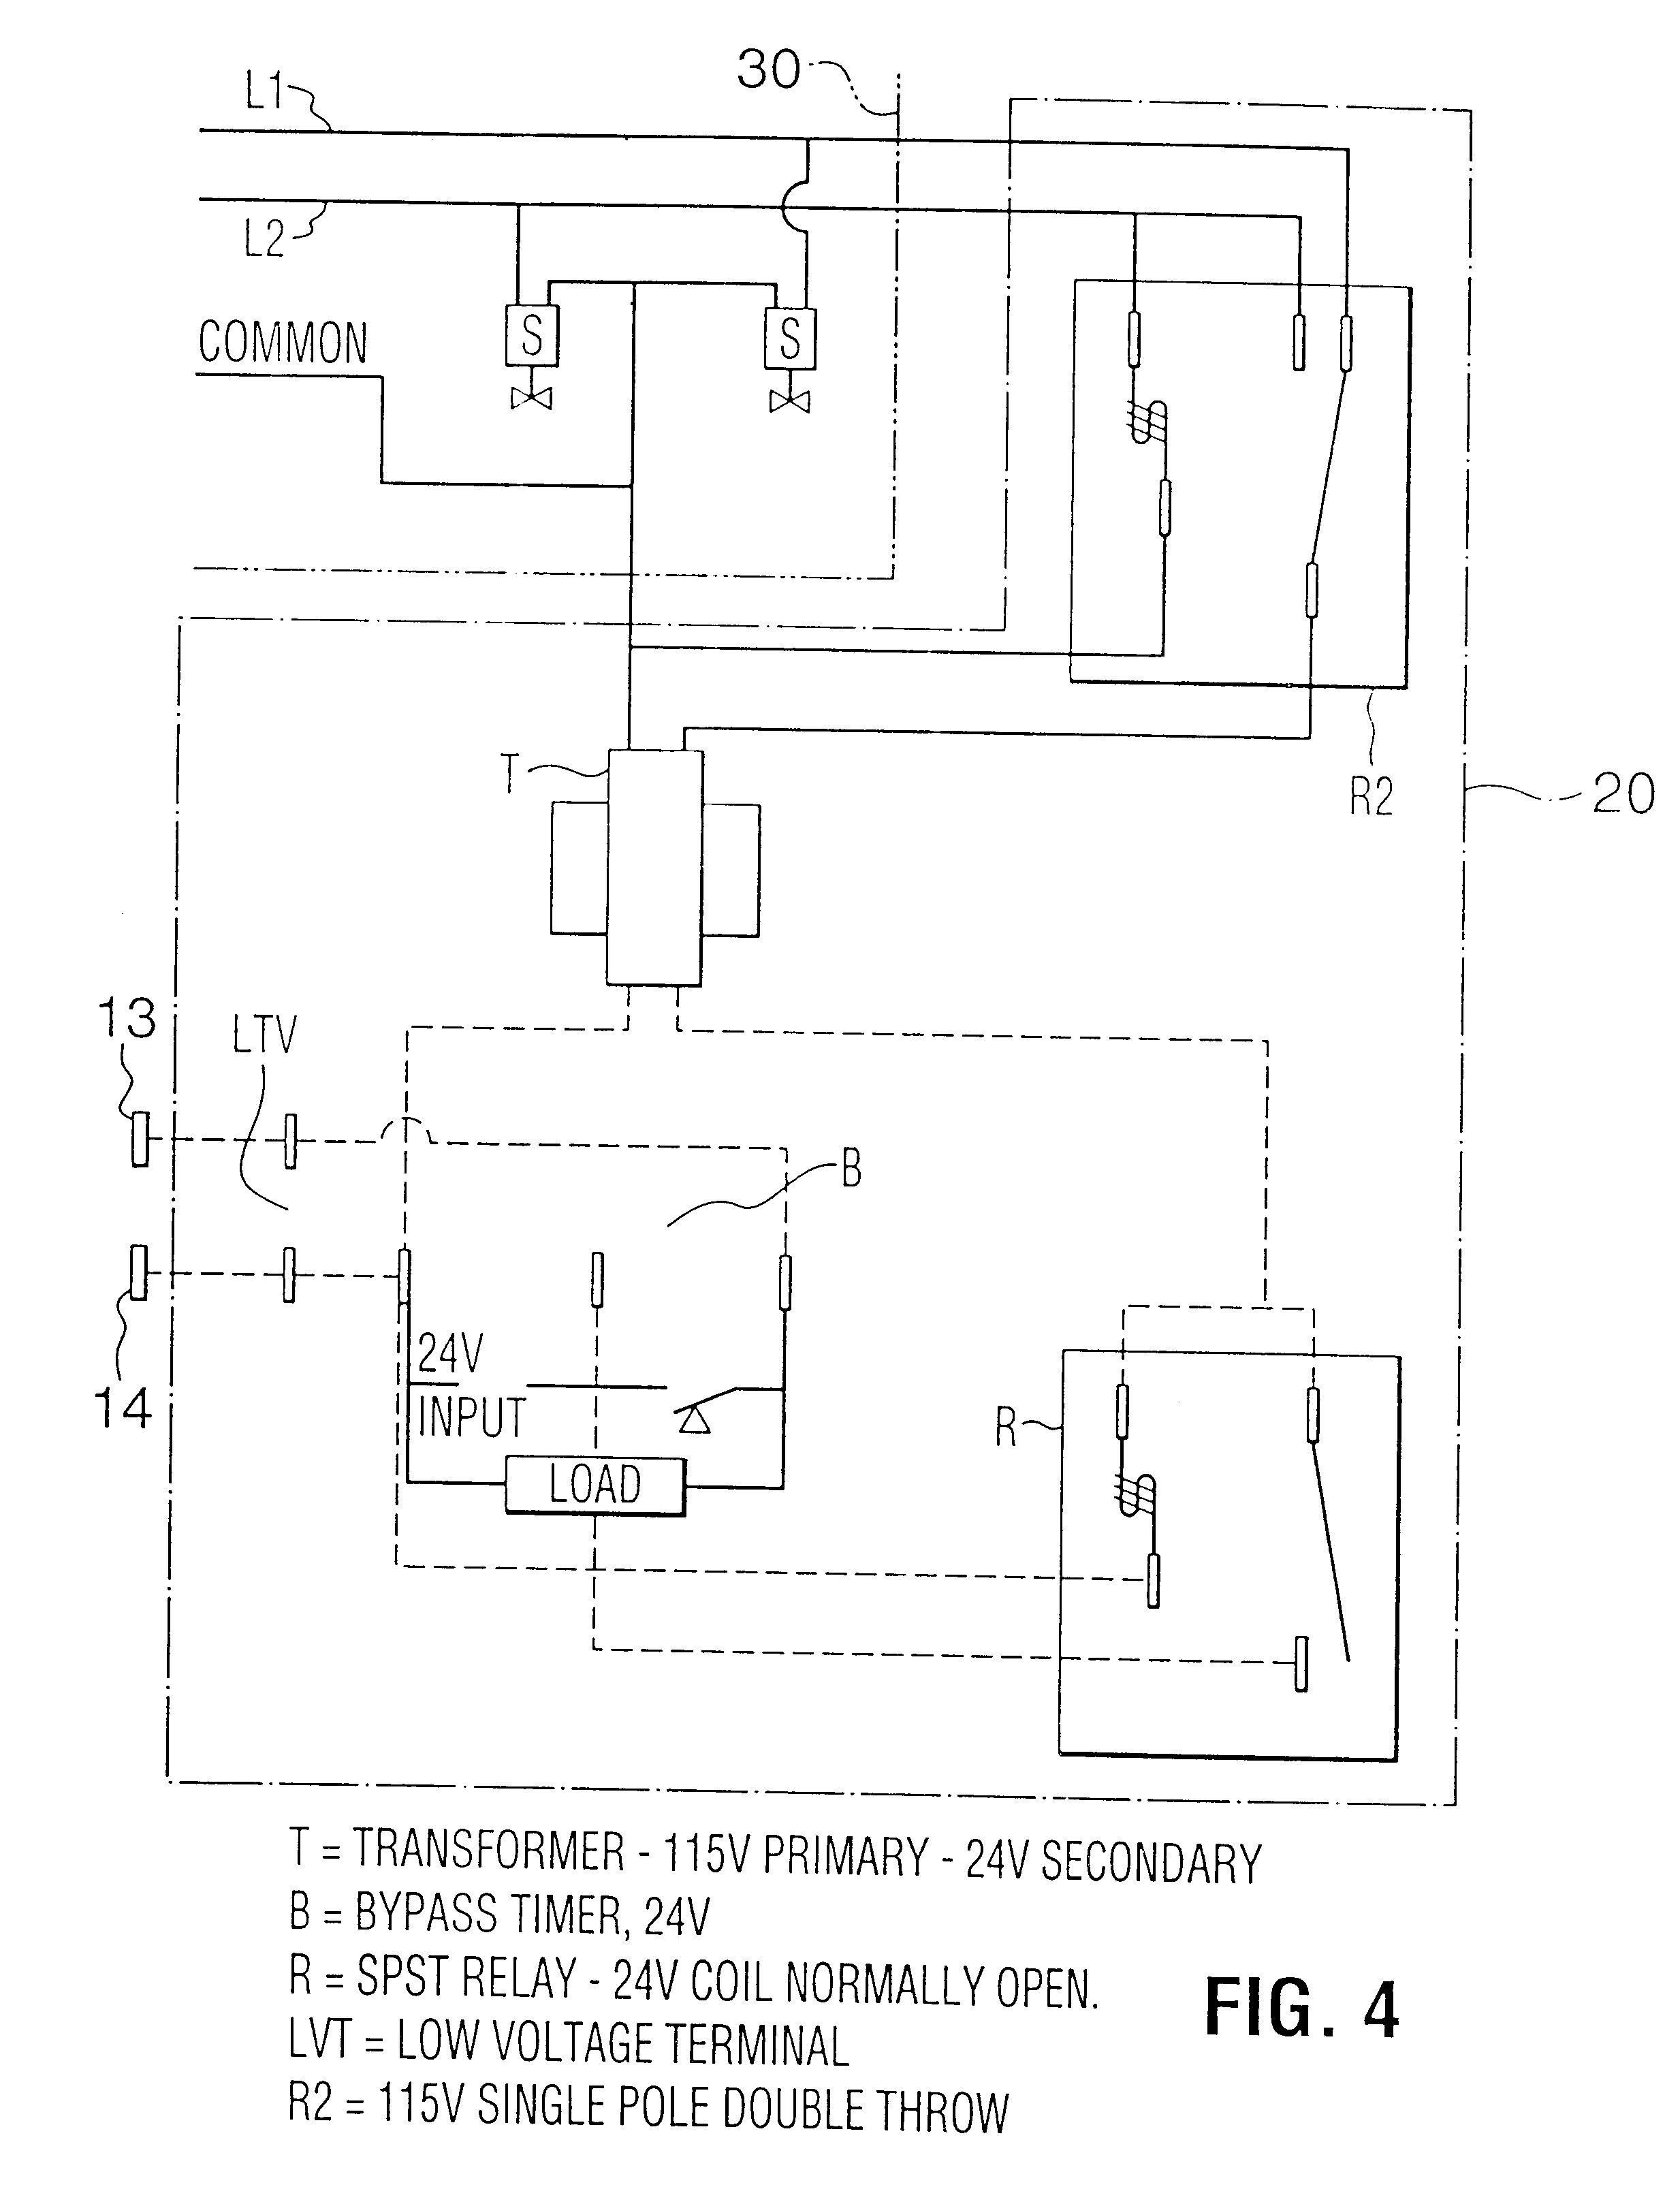 Patent US Appliance Safety Valve Assembly Google Patents - Normally open timed closed relay